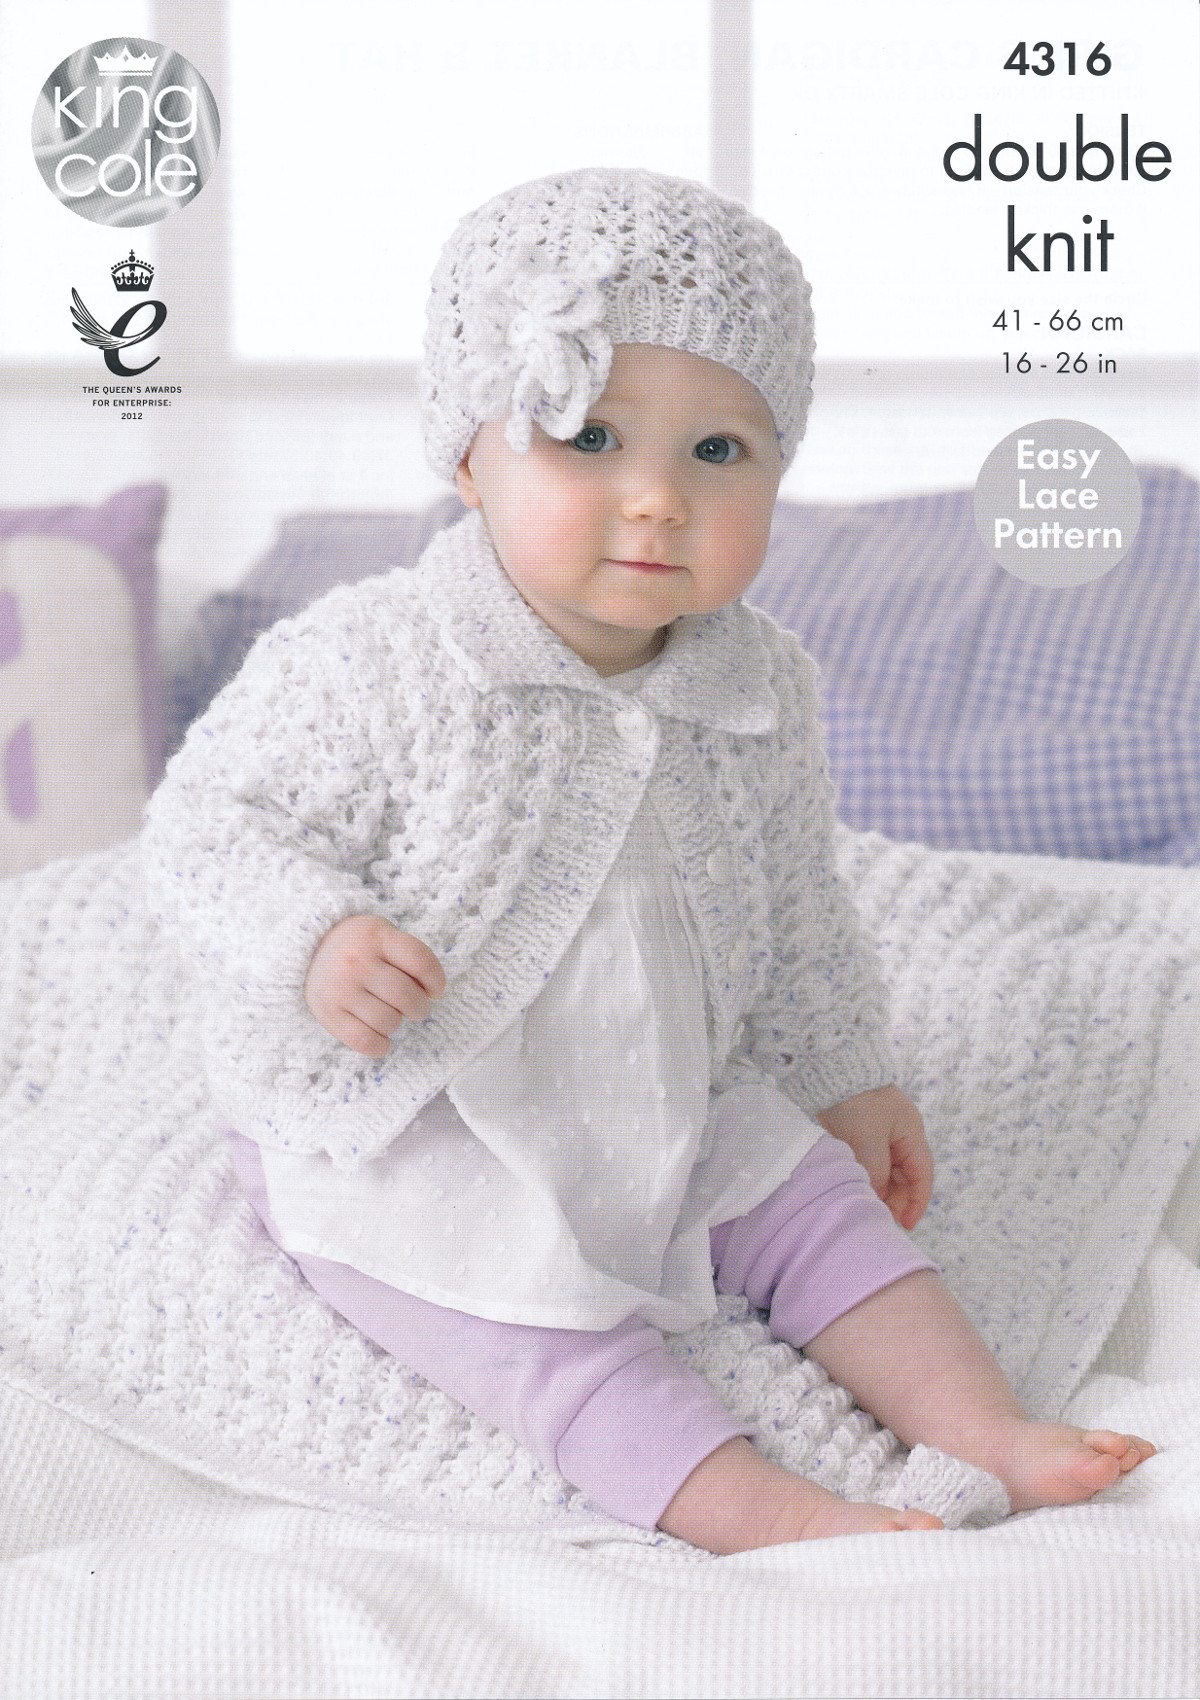 Baby Girl Blanket Knitting Patterns Details About Smarty Dk Knitting Pattern King Cole Ba Lace Cardigan Blanket Flower Hat 4316